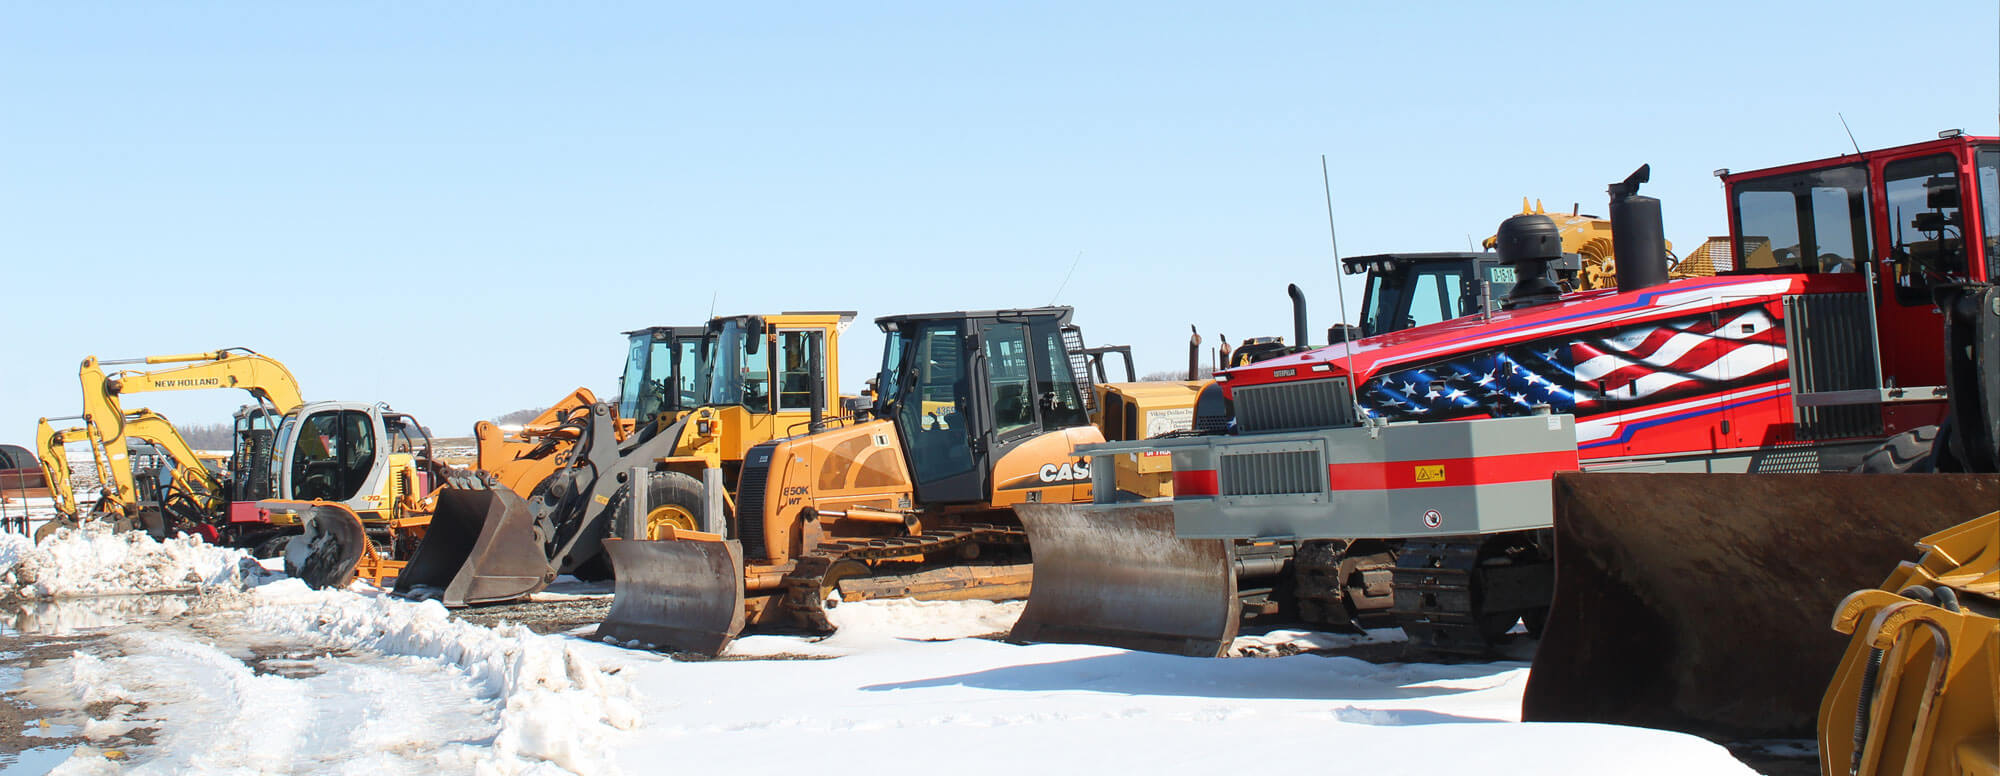 Row of Dahle Enterprises' excavating equipment in winter